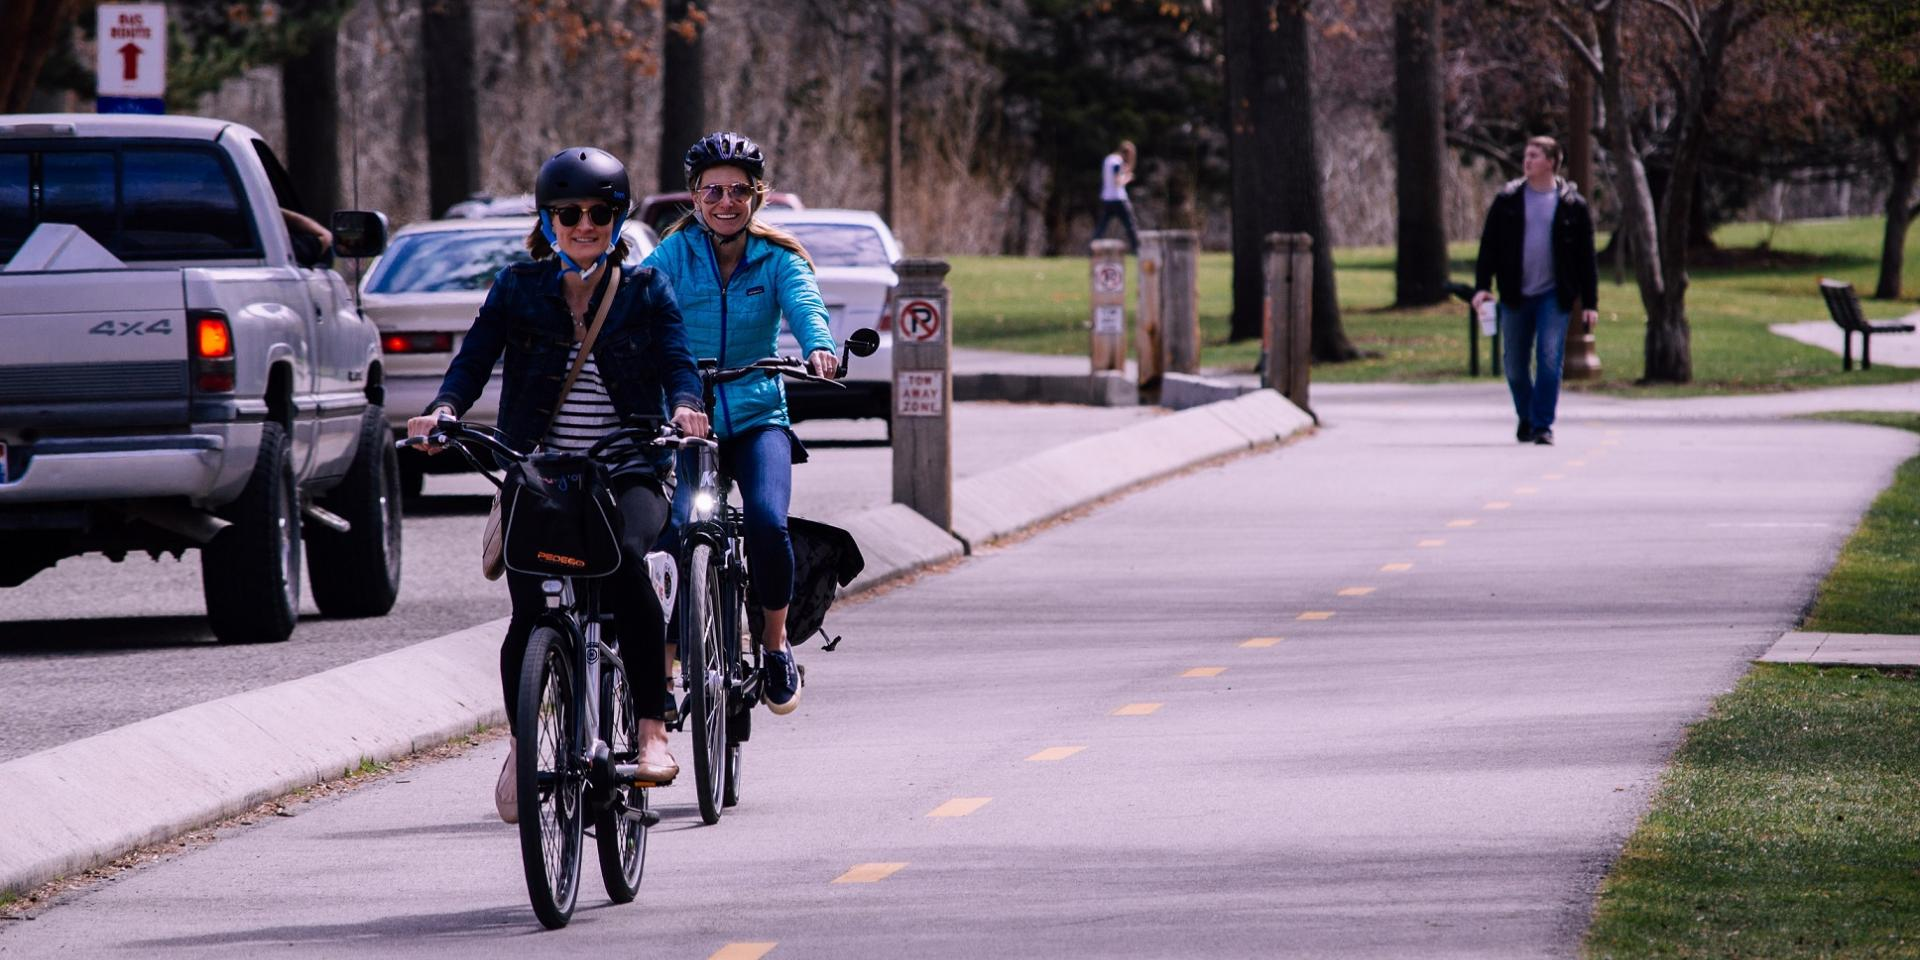 Two women riding bicycles on a bike path